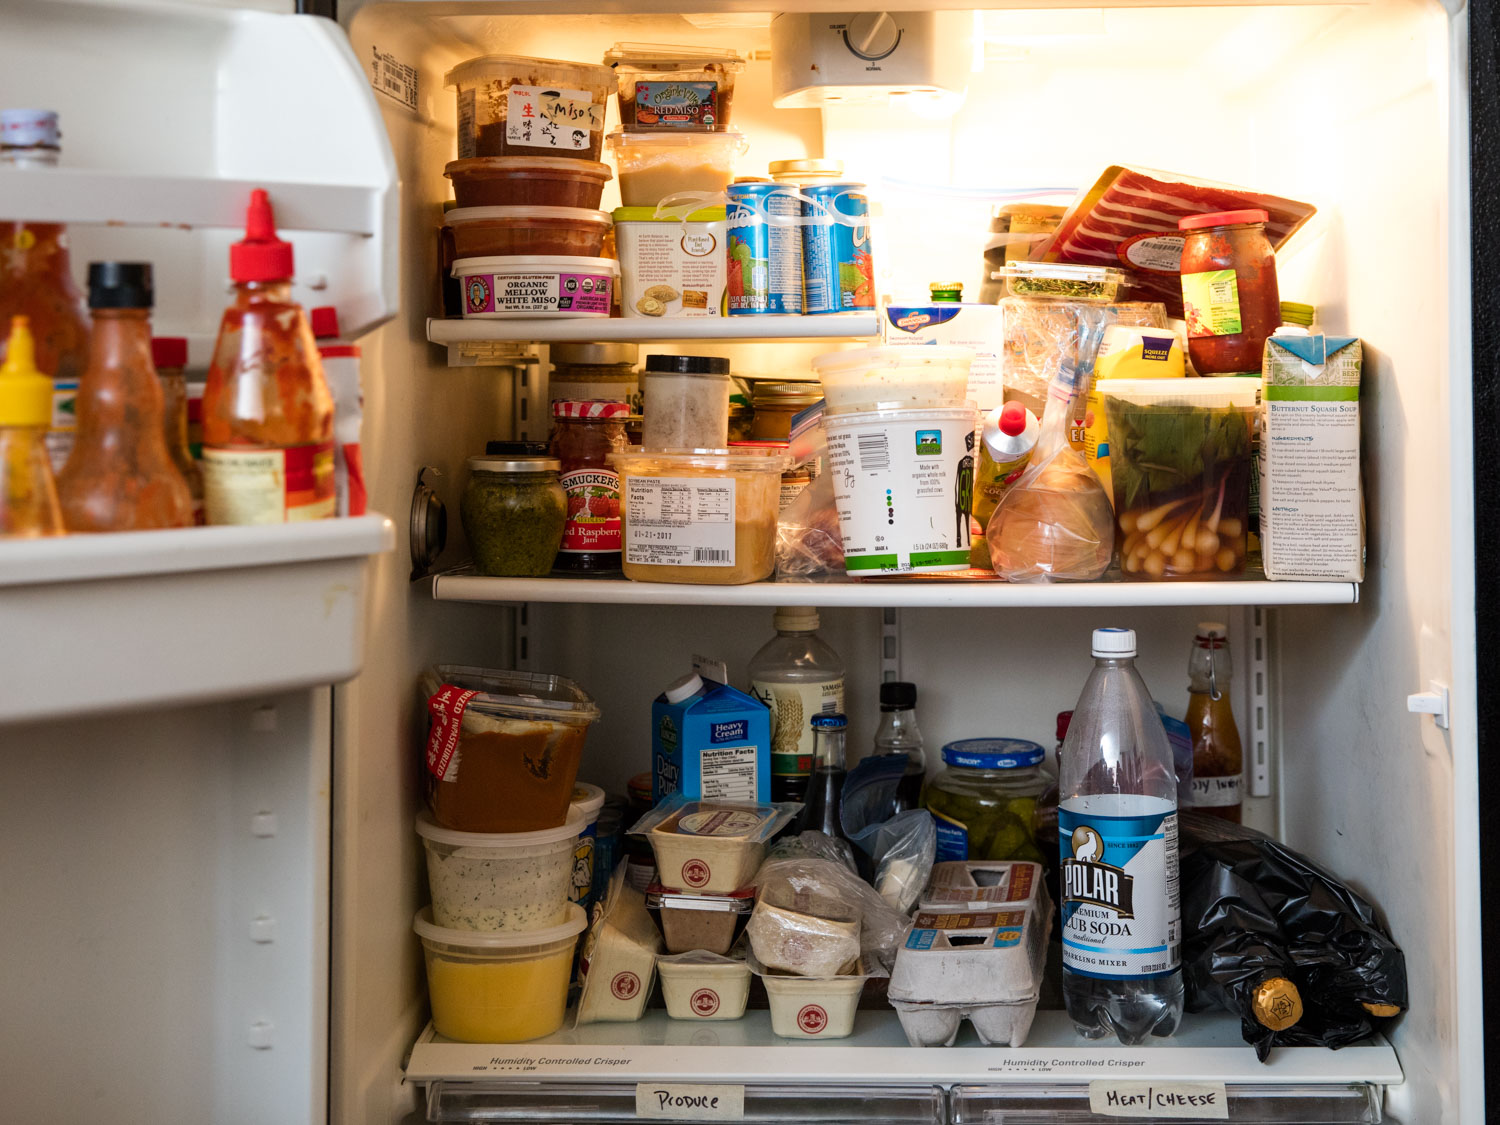 What are the simple questions about refrigerators before buying it for a family?